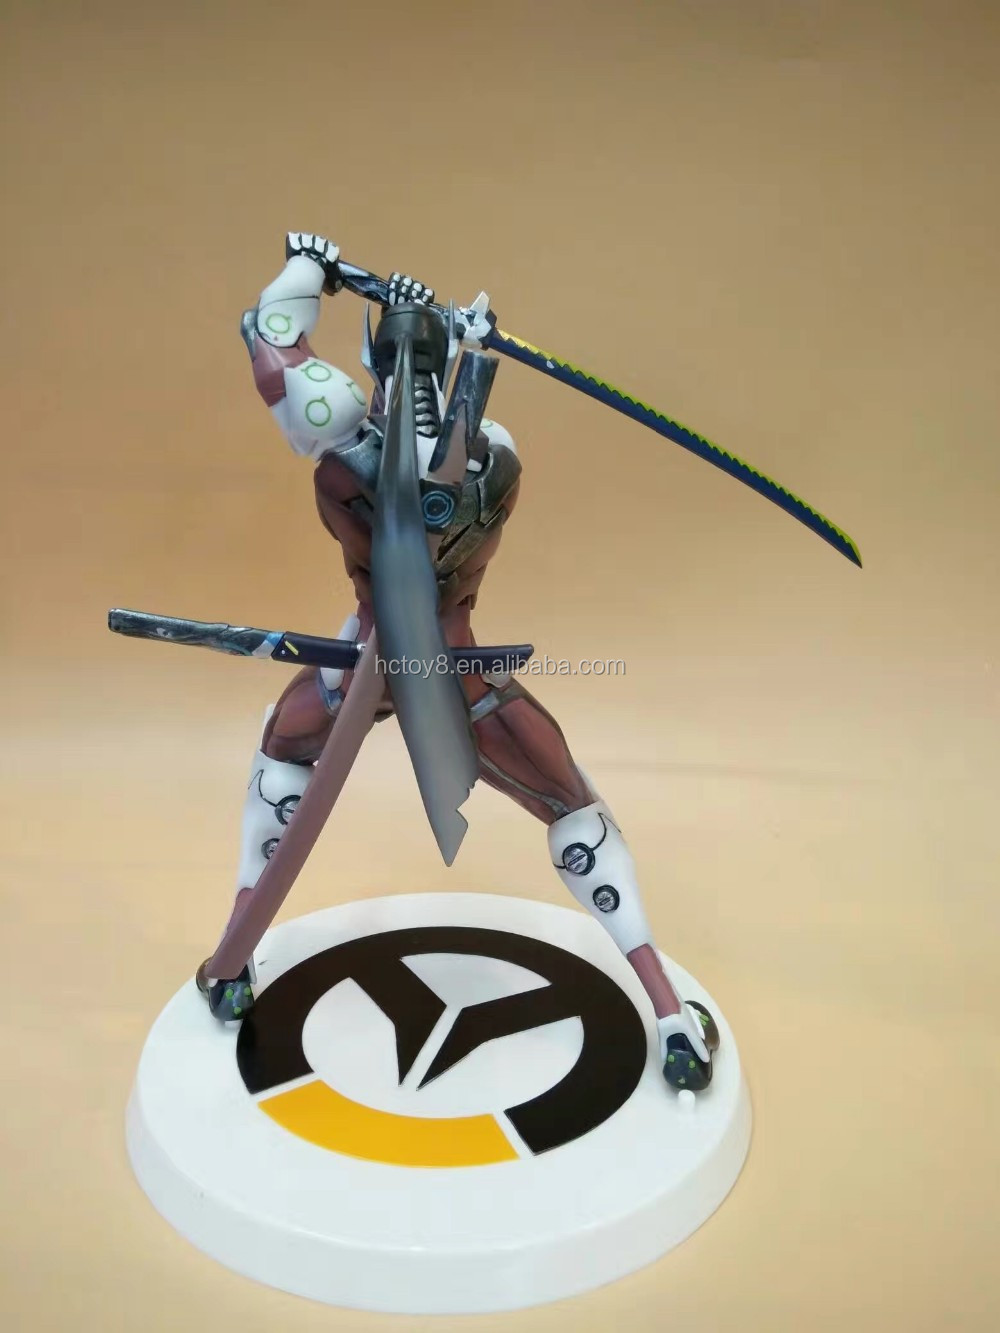 Gzltf Overwatch White Genji PVC Action Figure